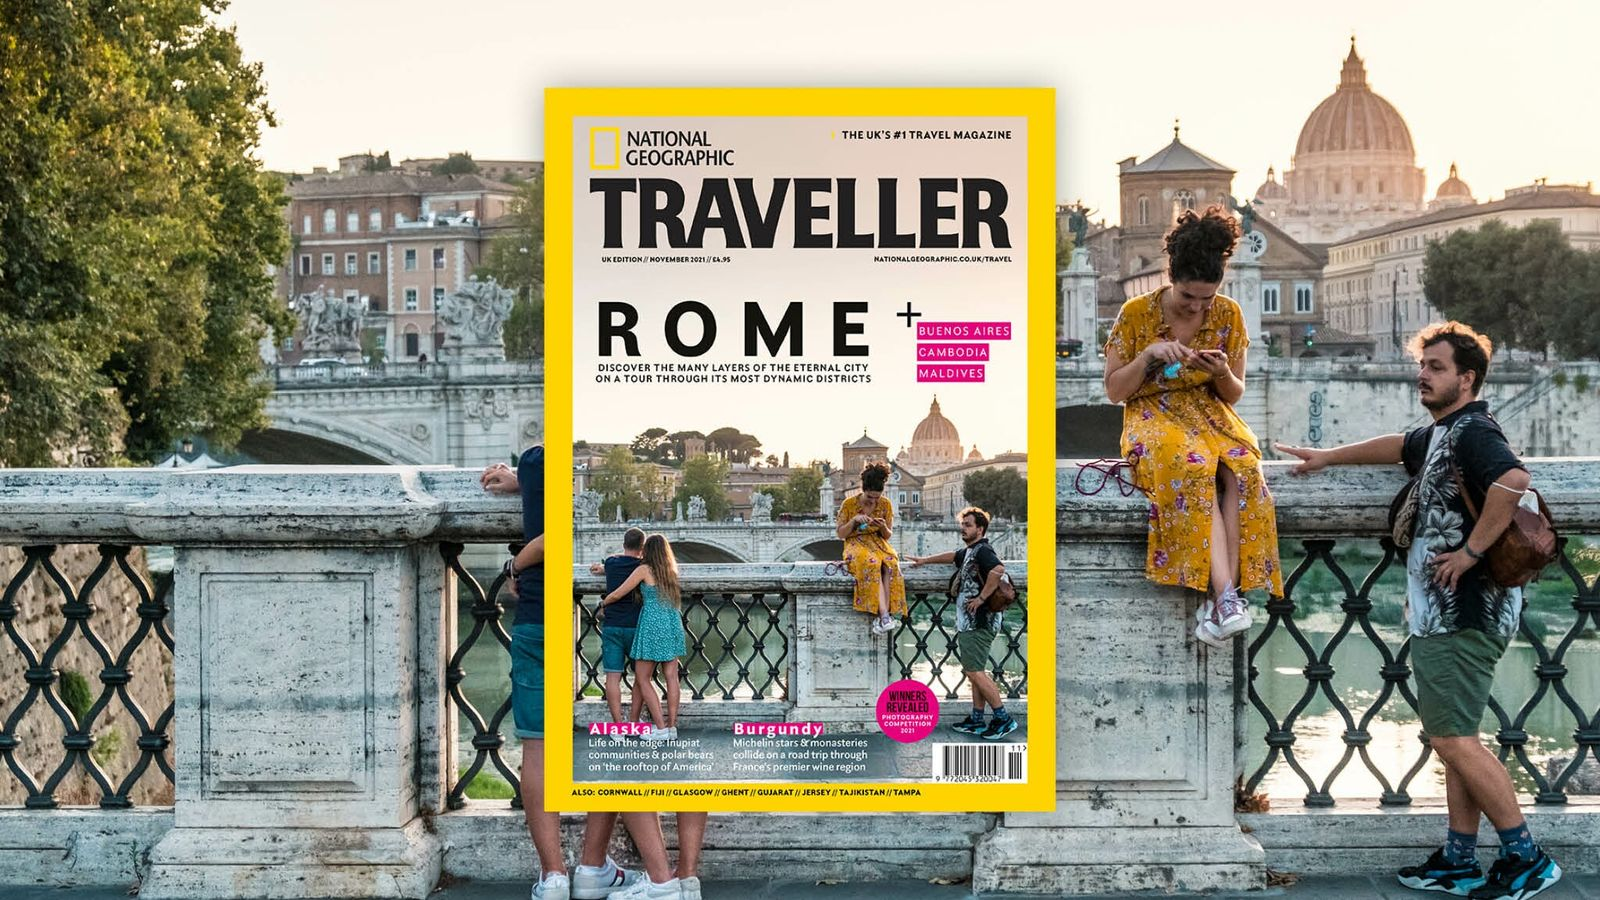 The November 2021 issue of National Geographic Traveller (UK).